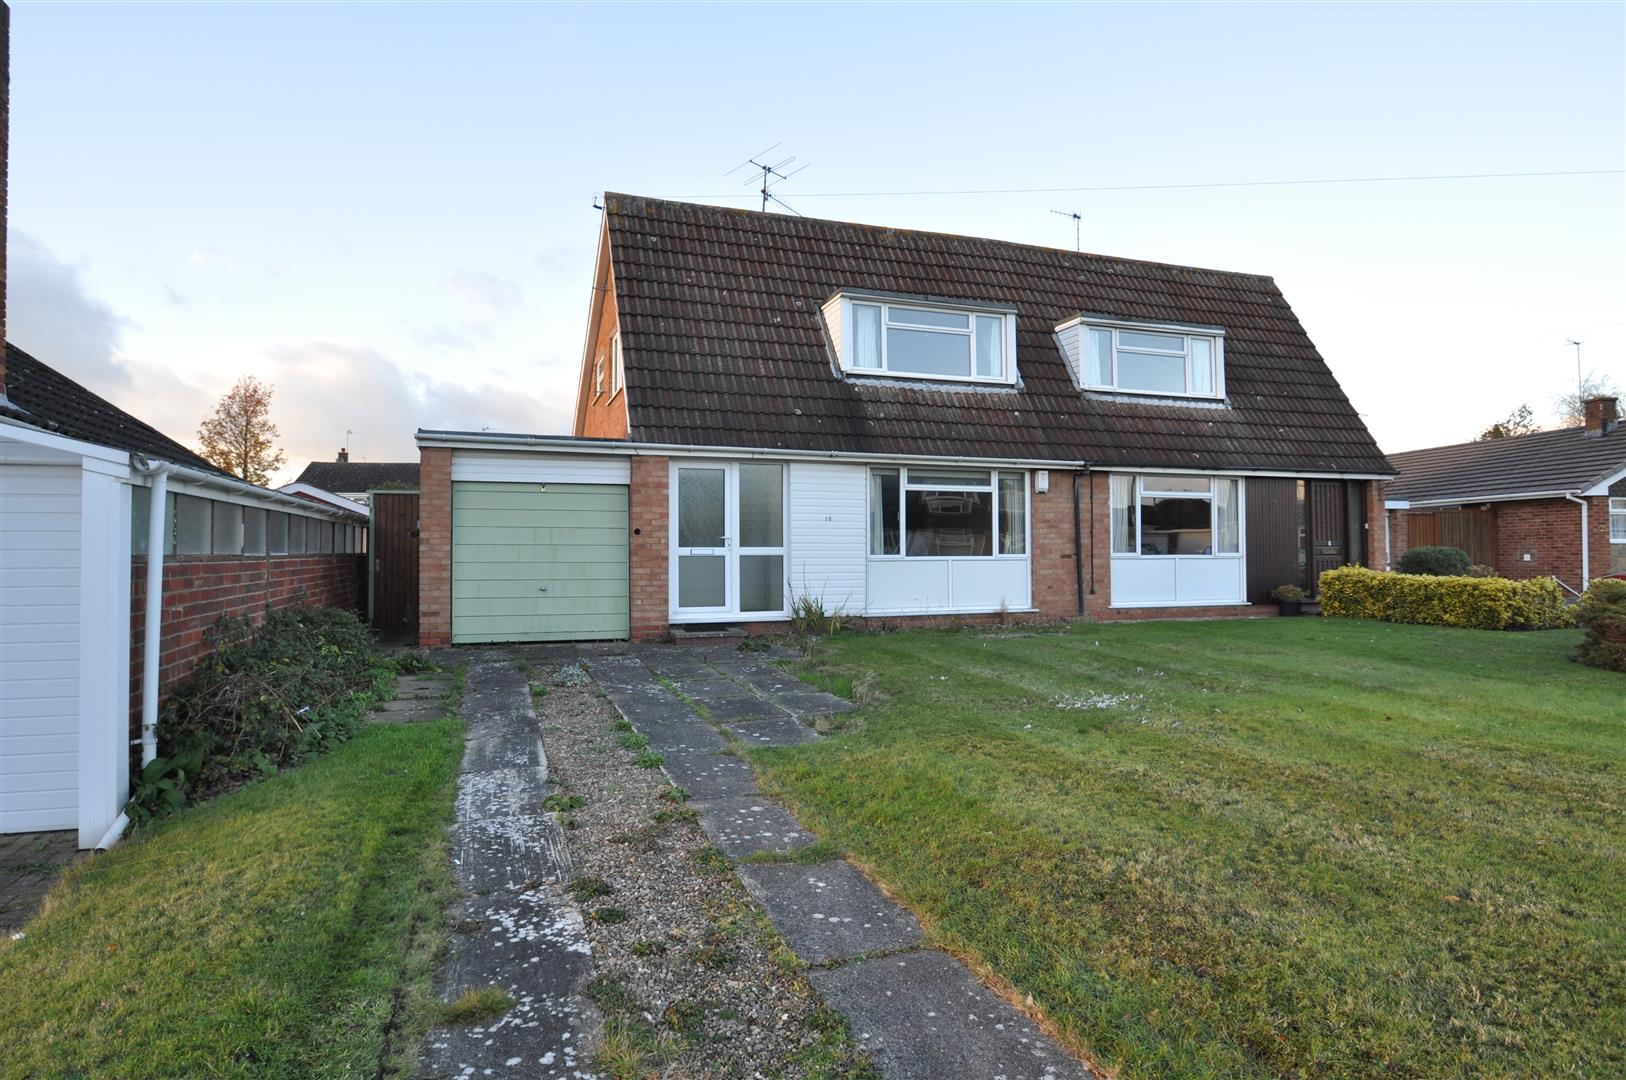 2 Bedrooms Semi Detached House for sale in Abberley Drive, Droitwich